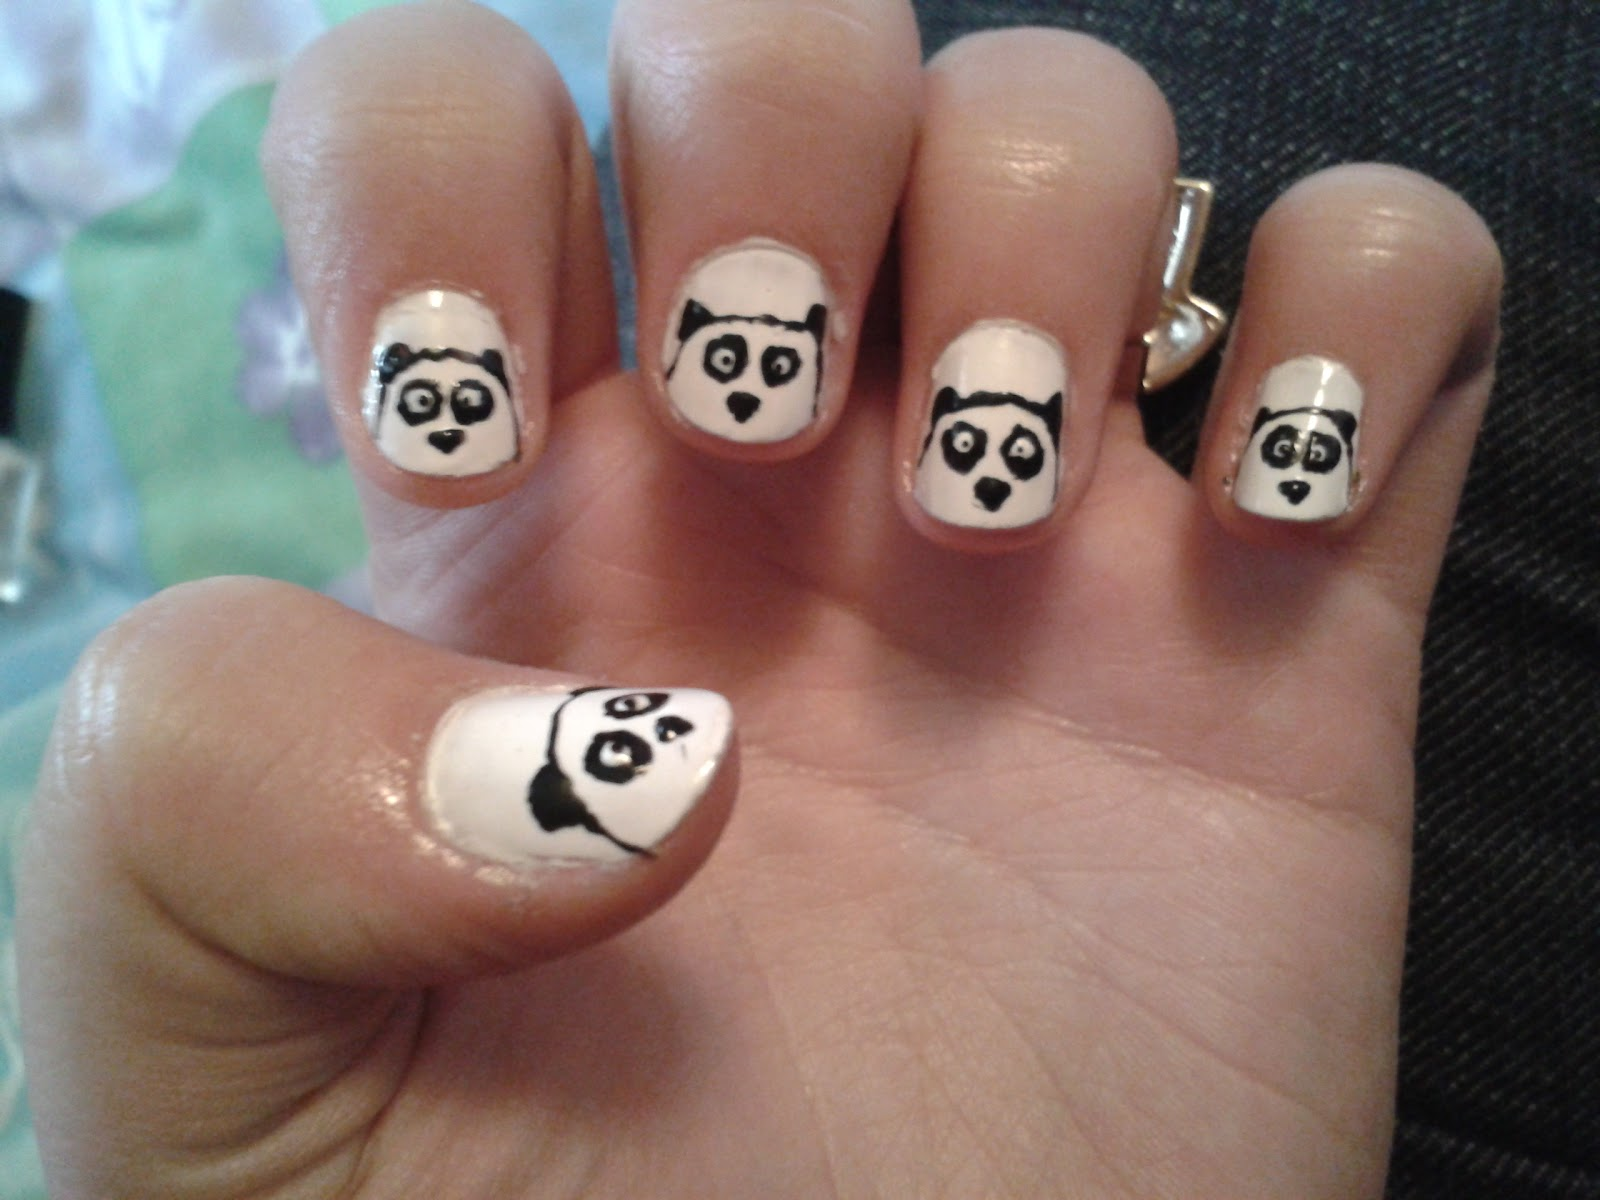 And here's me wearing the lovely panda ring i bought from New Look: